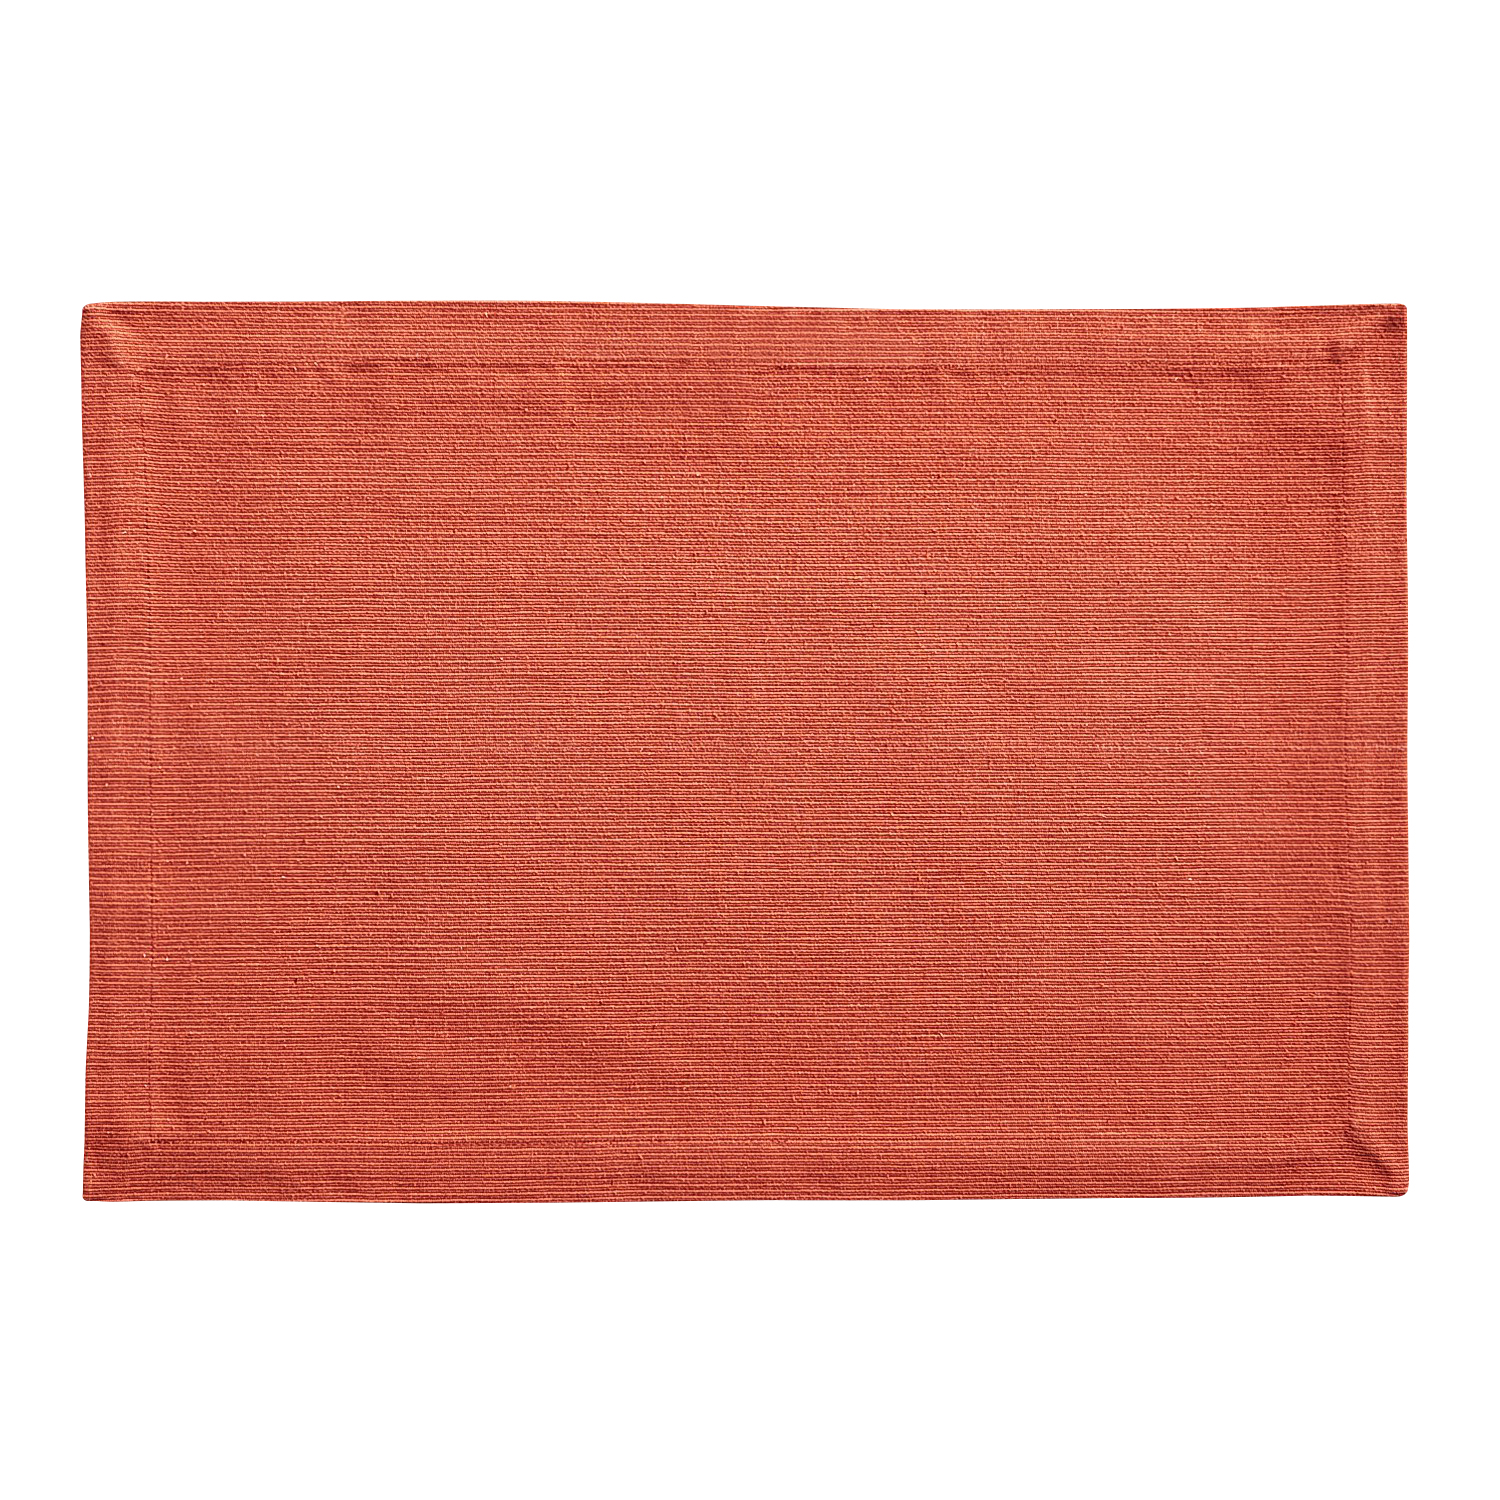 Red Earth Tonal Placemat